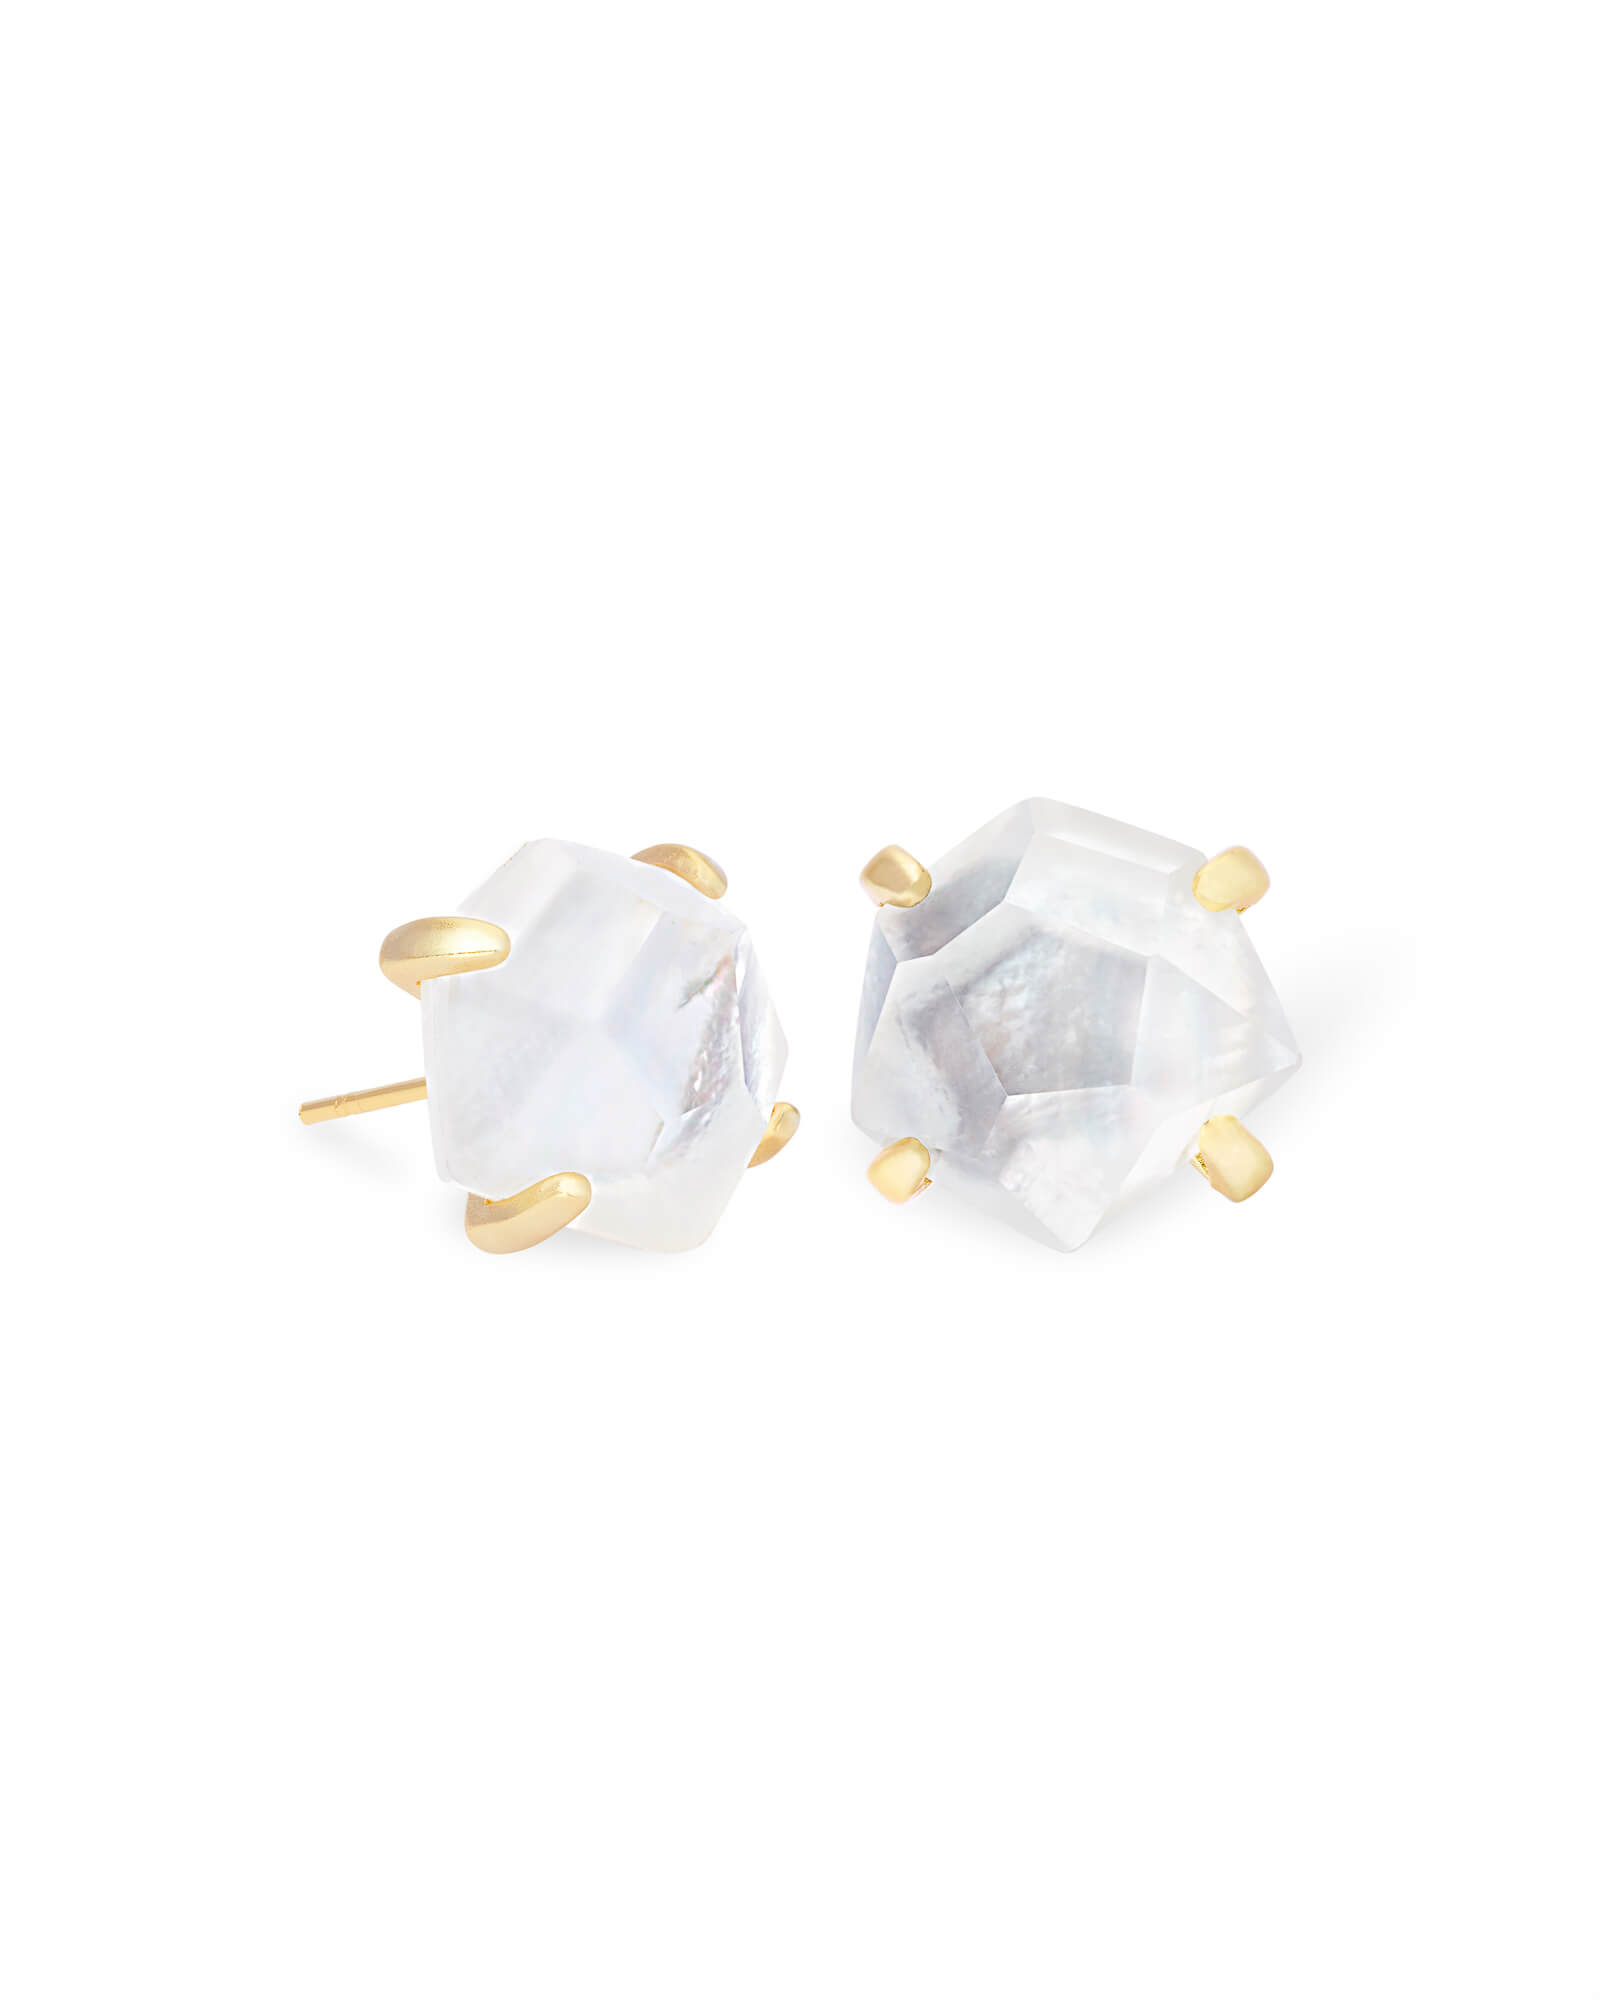 Ellms Gold Stud Earrings in Ivory Mother-of-Pearl